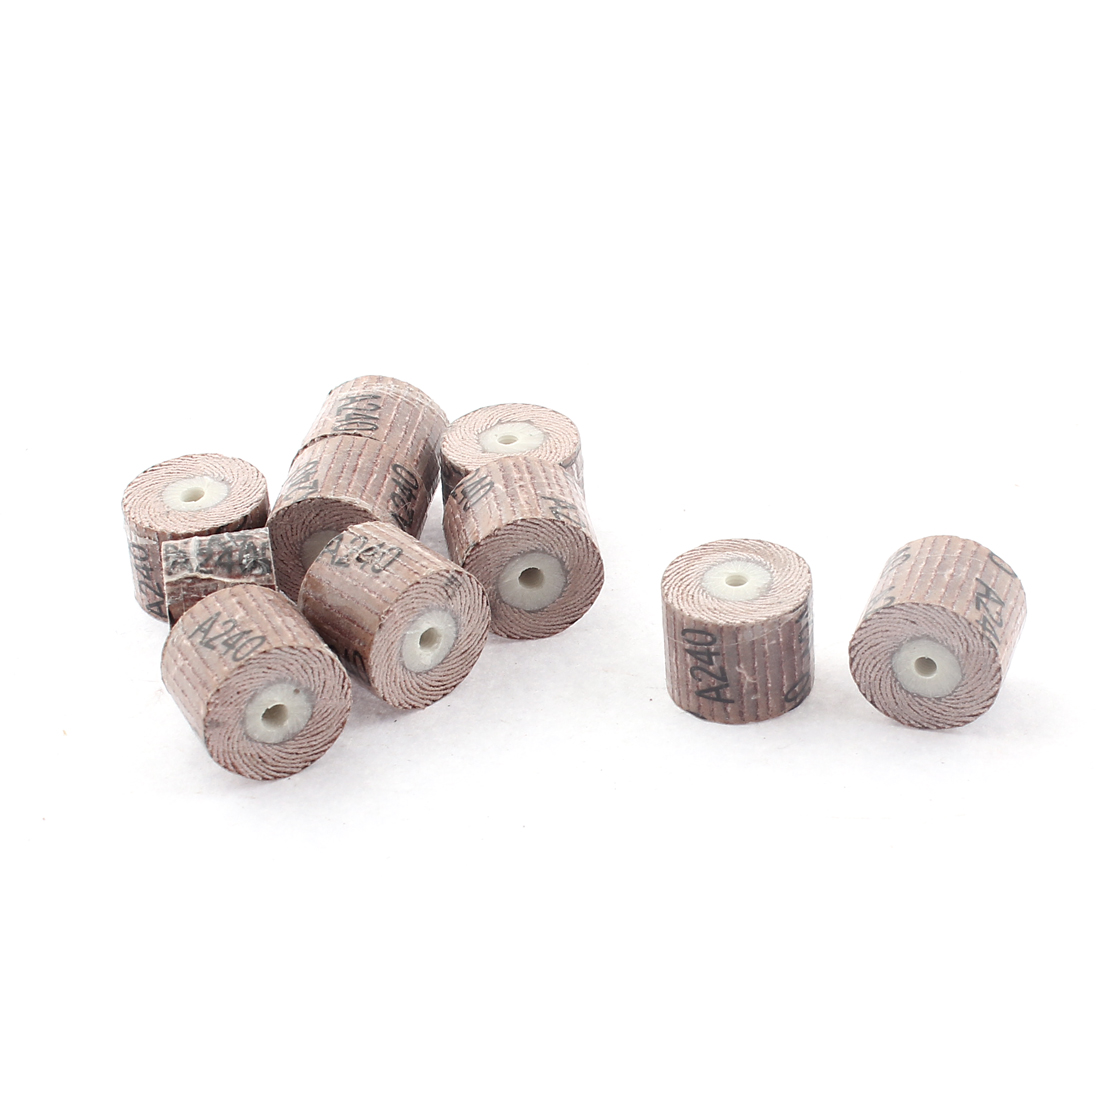 10pcs Wooden Core Fiber Abrasives Grinding Wheel Roller 16mmx2.5mmx12mm